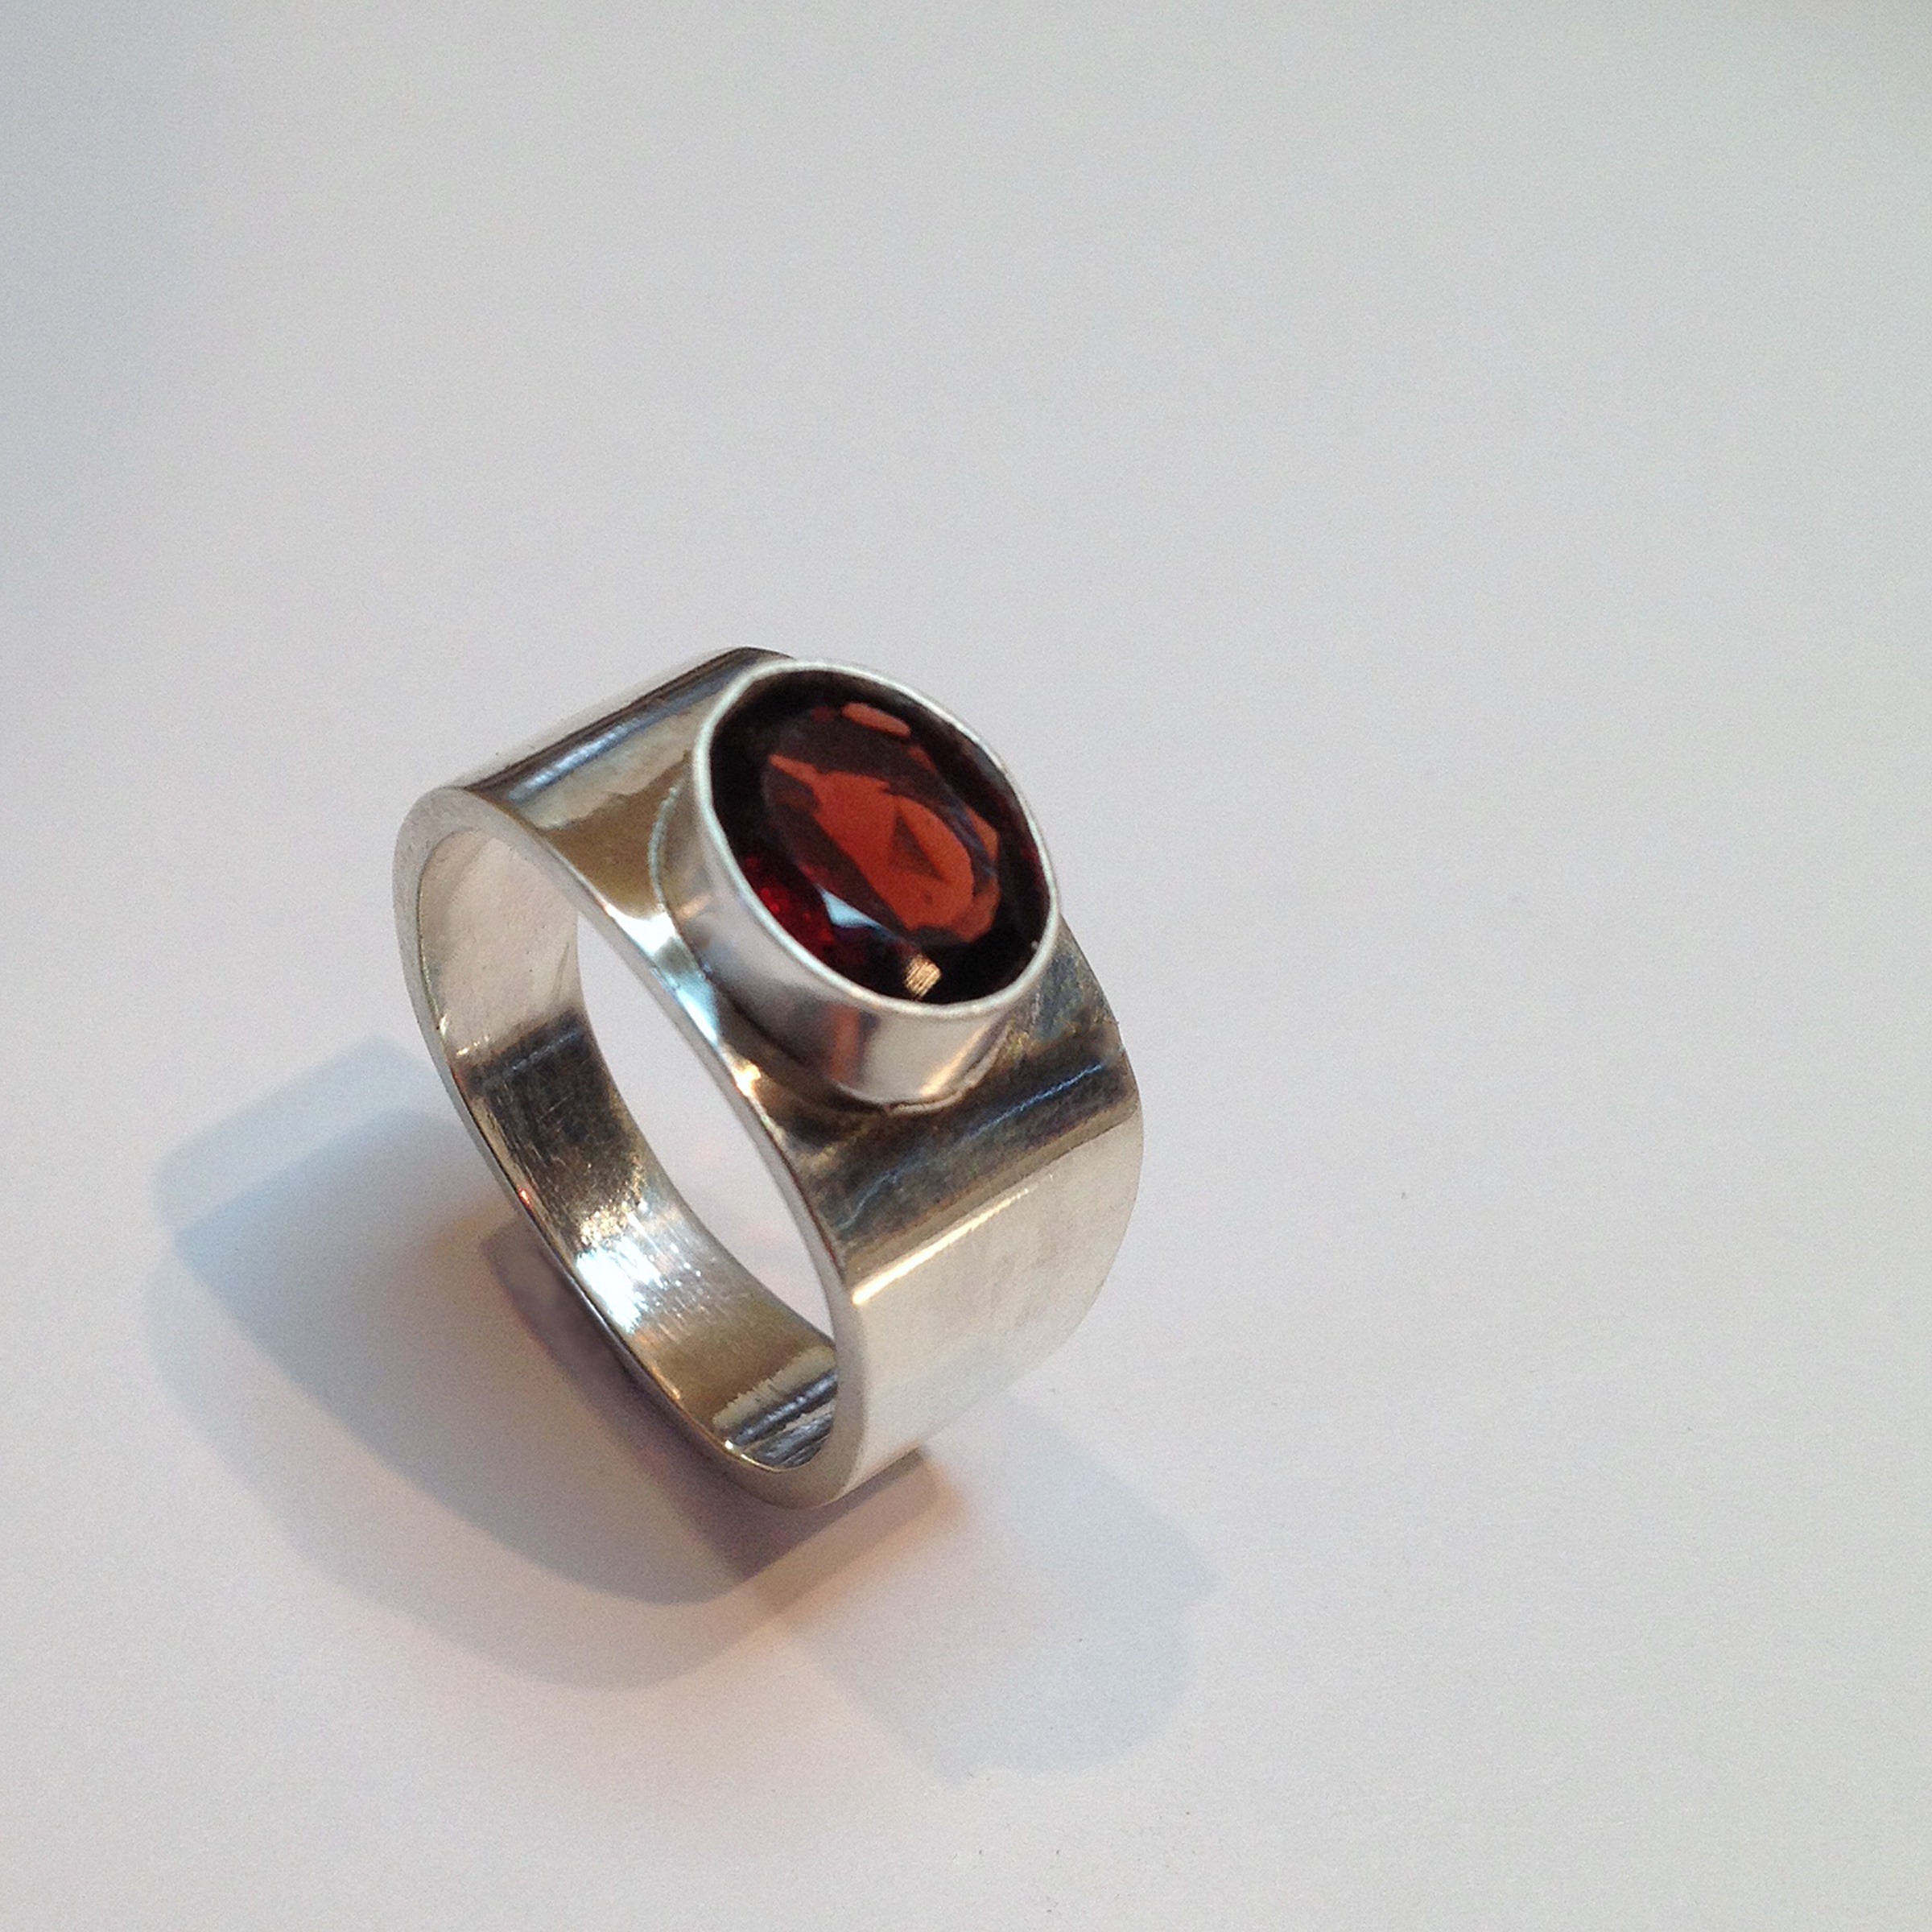 Ring Sterling Silver and Garnet n.jpg